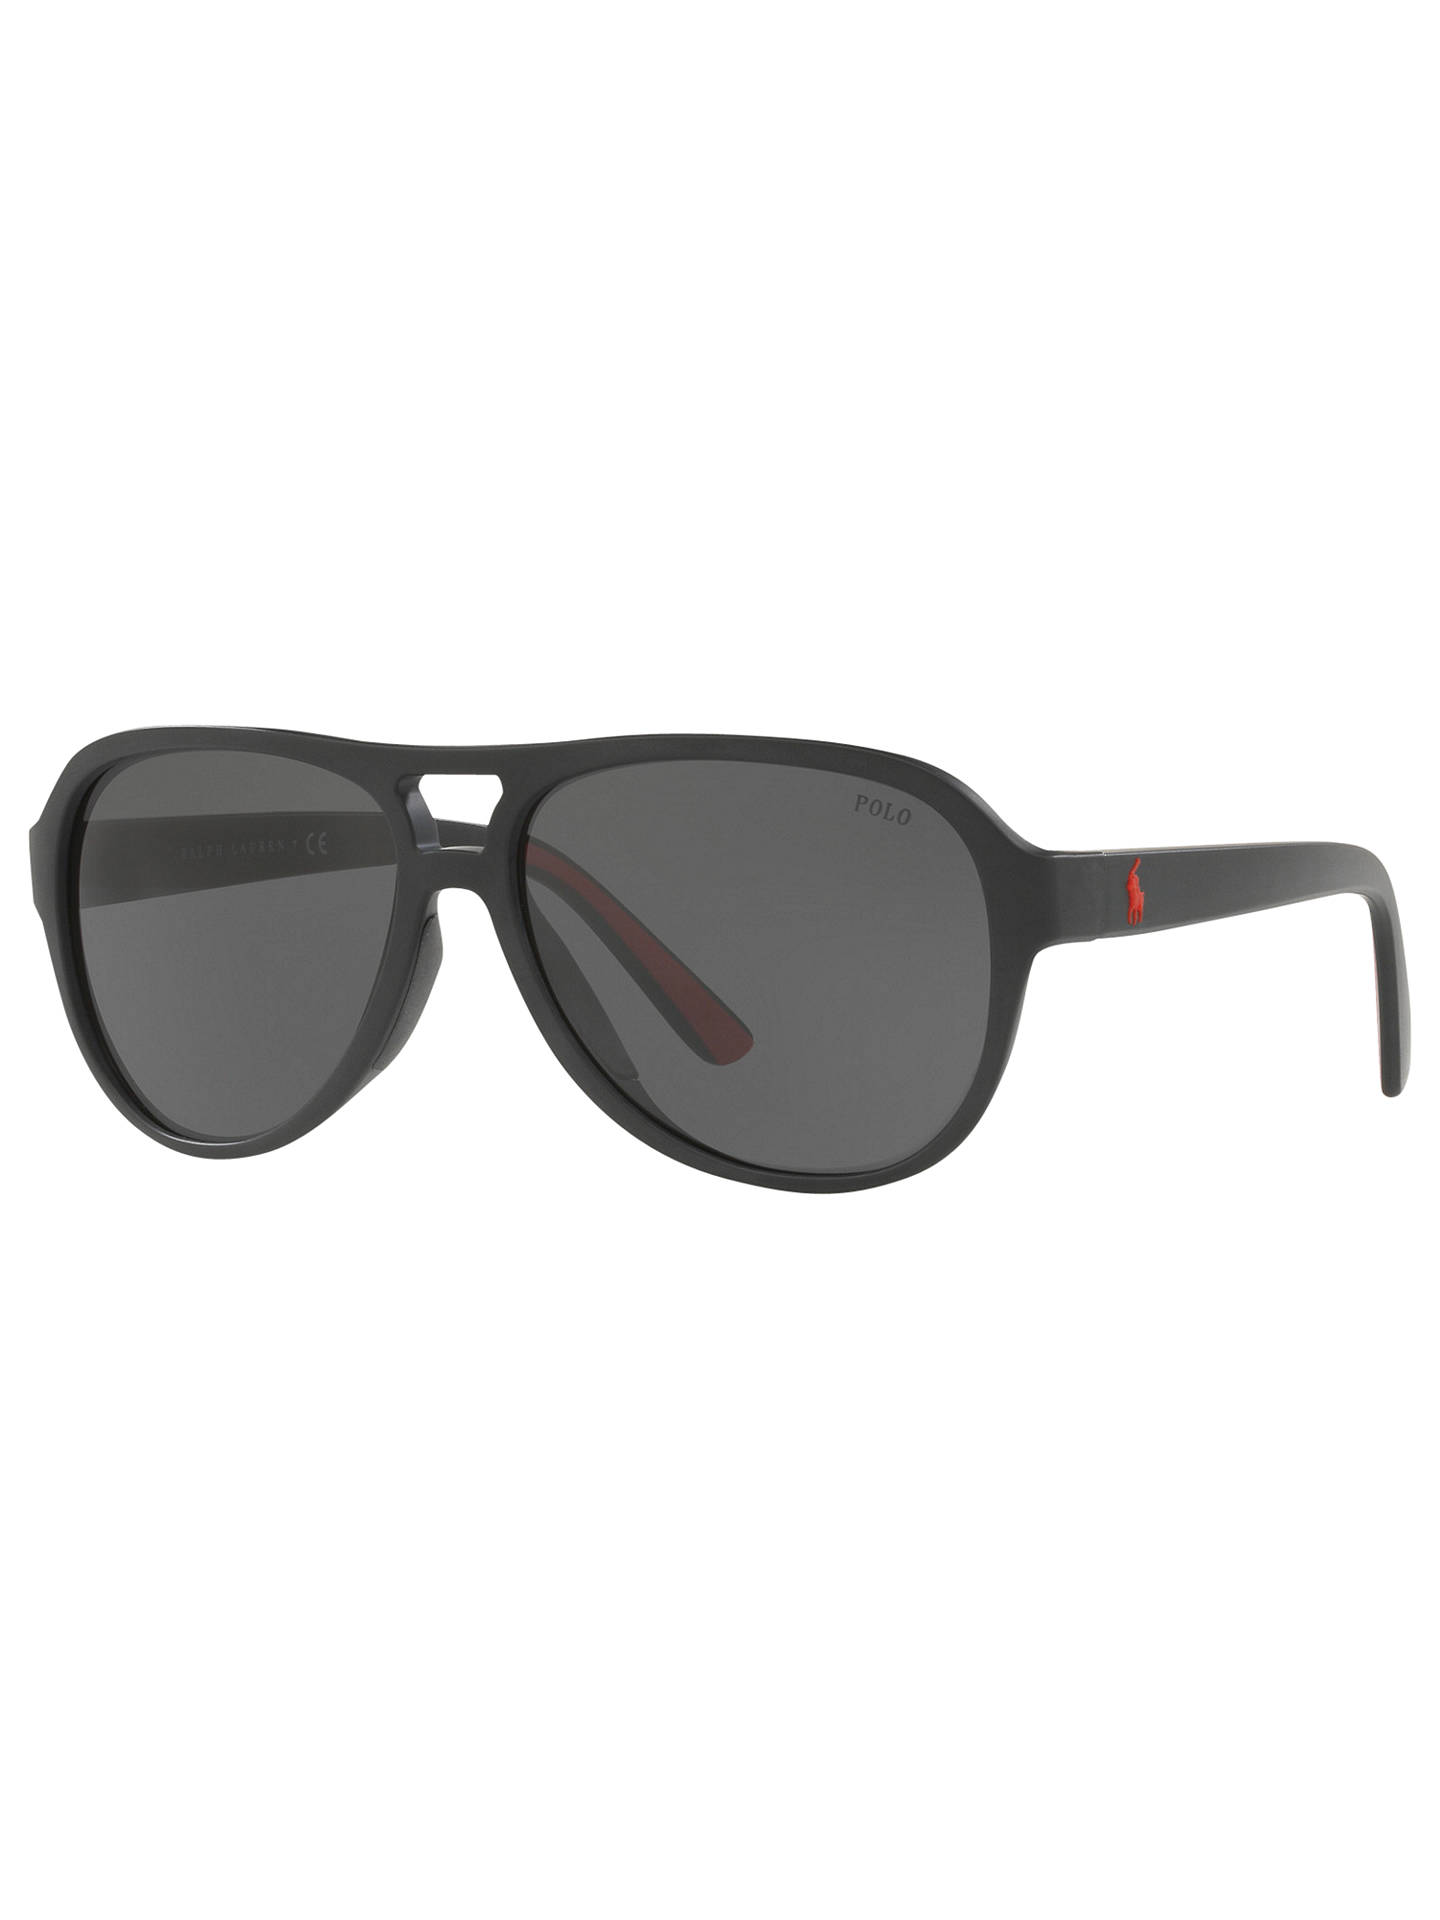 BuyPolo Ralph Lauren PH4123 Men's Aviator Sunglasses, Matte Black/Black Online at johnlewis.com